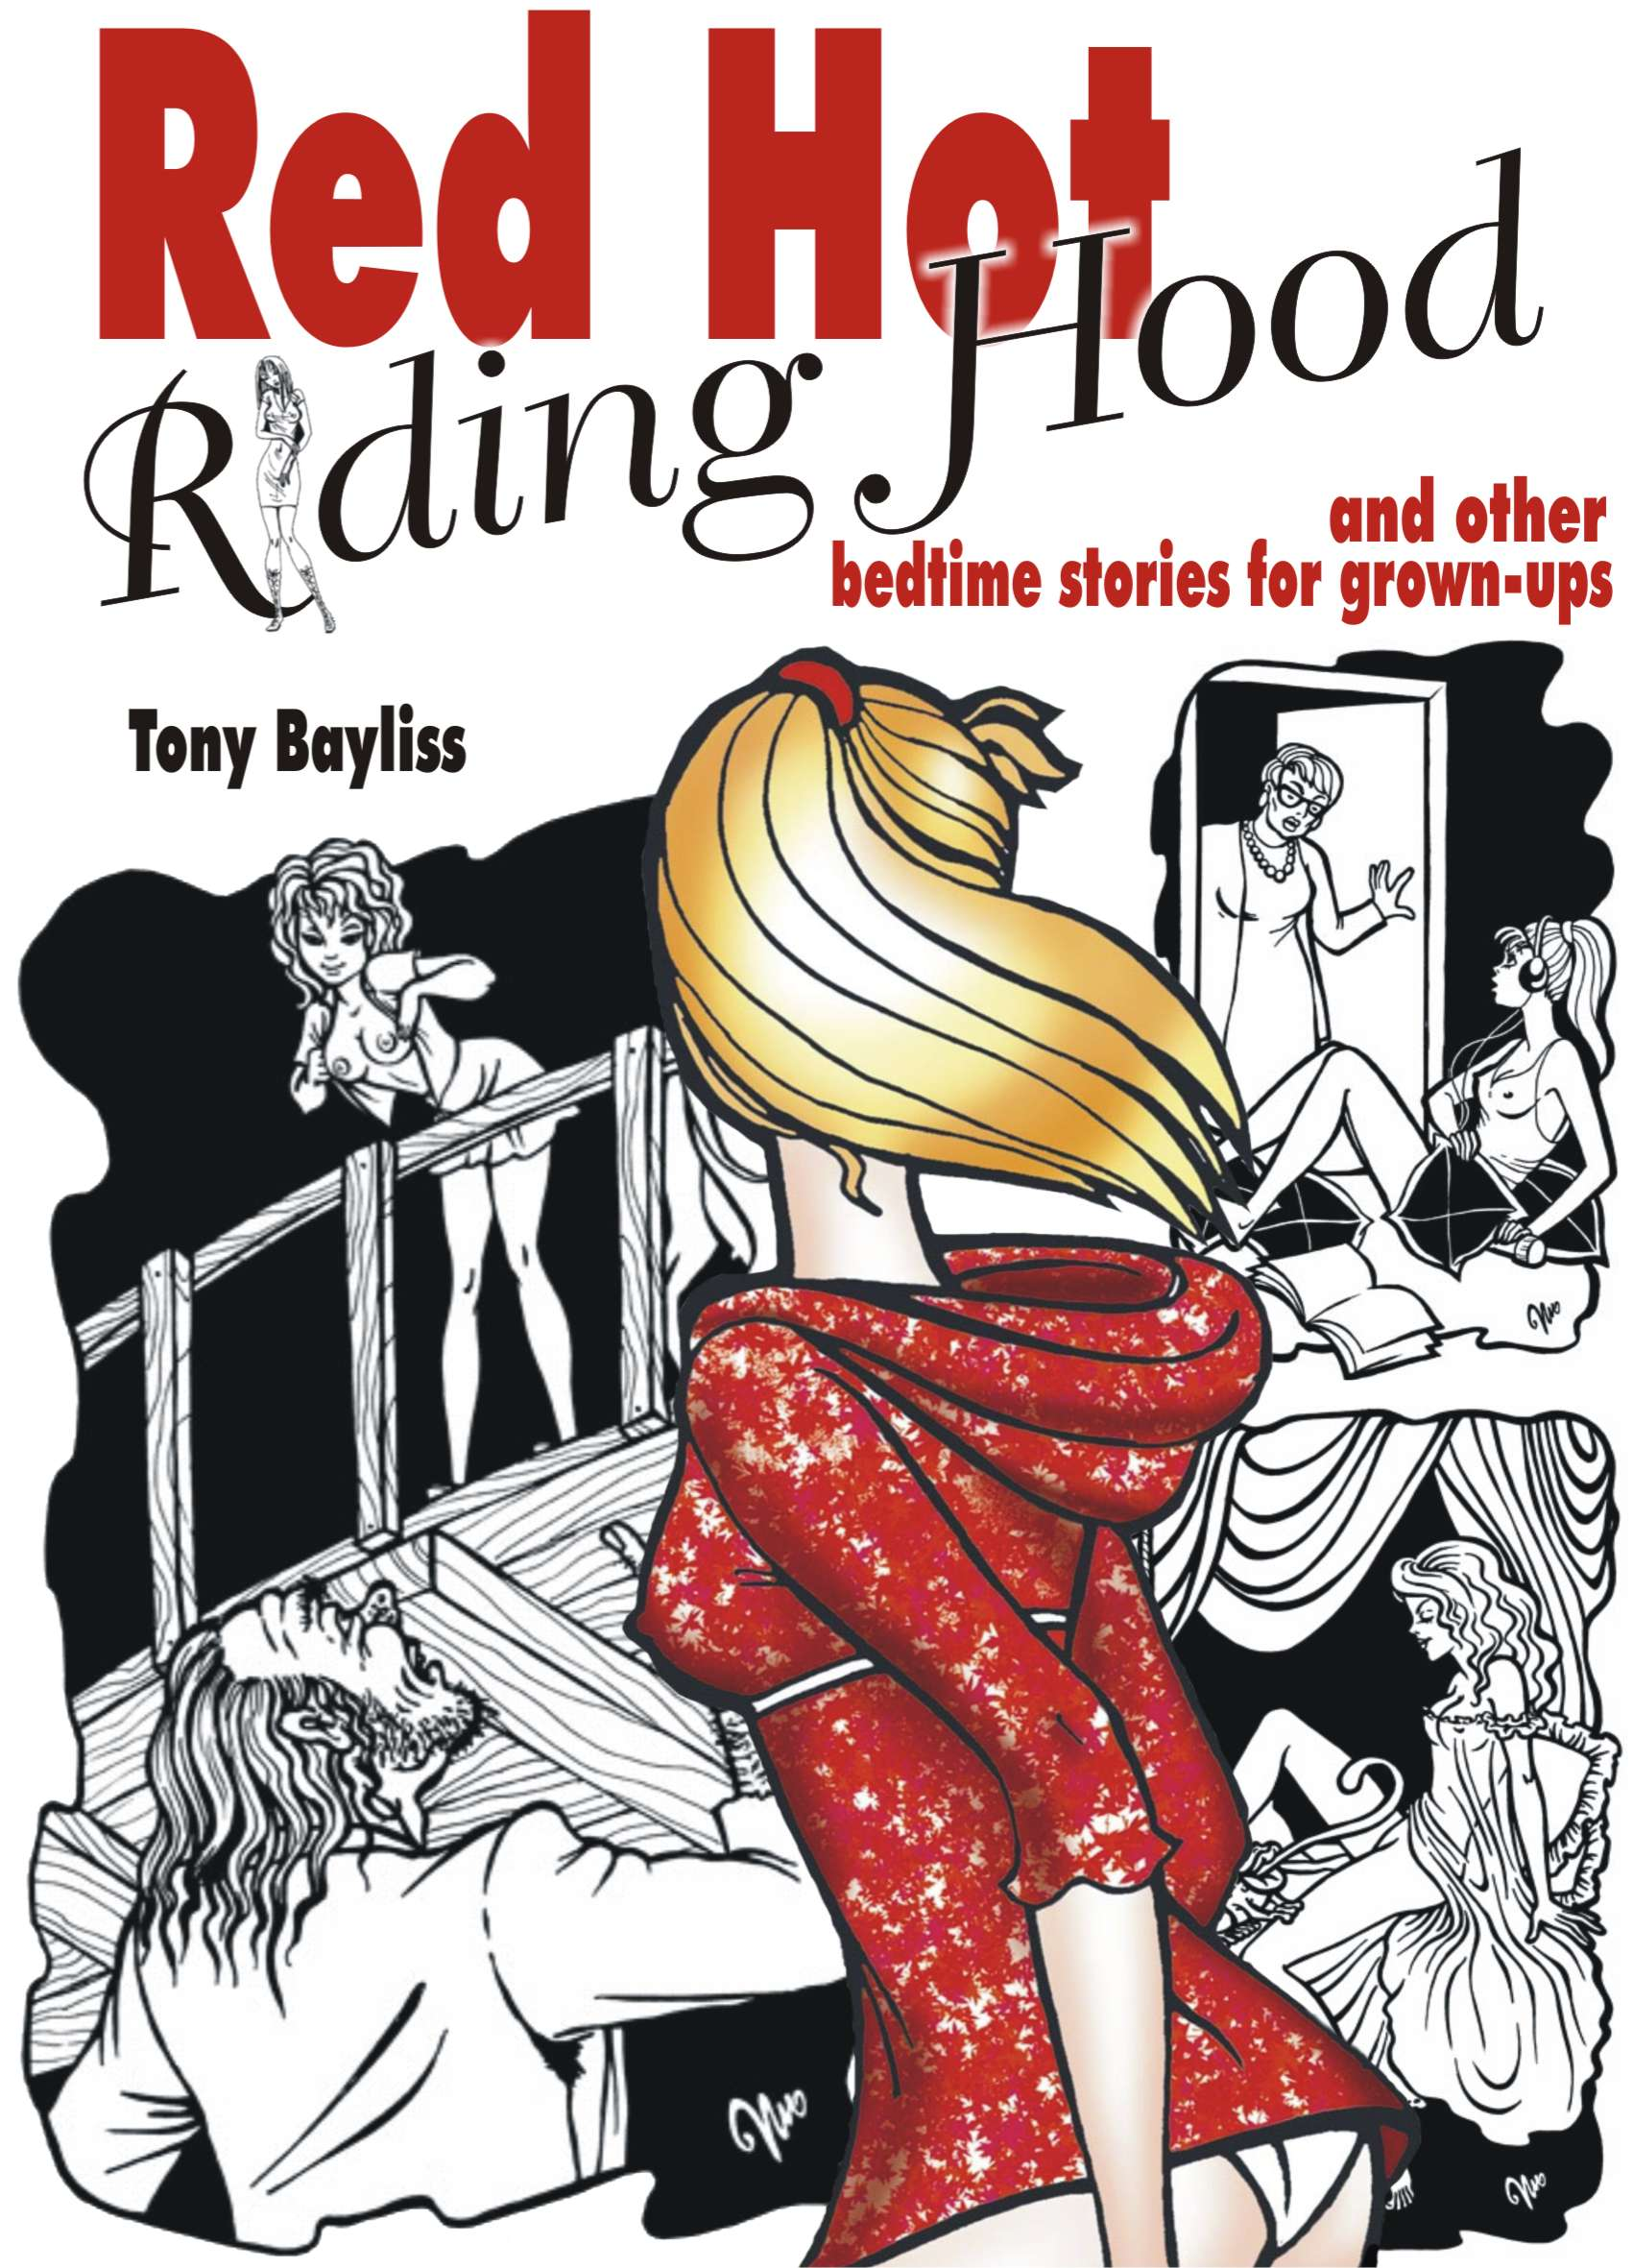 Red Hot Riding Hood by Tony Bayliss